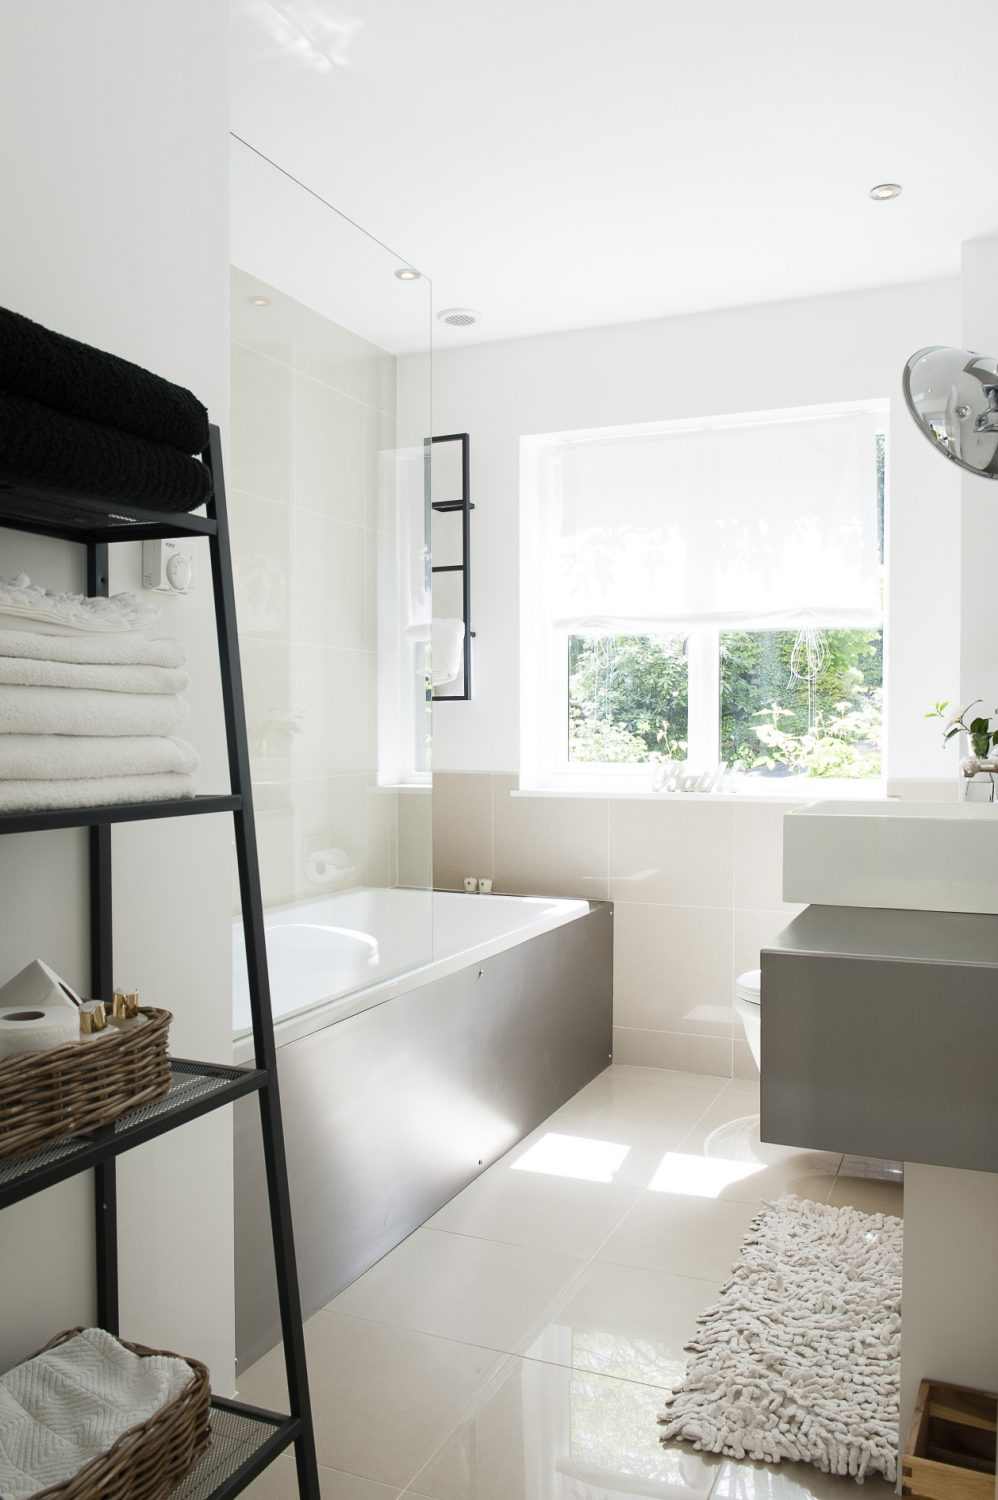 Light pours into another guest bathroom